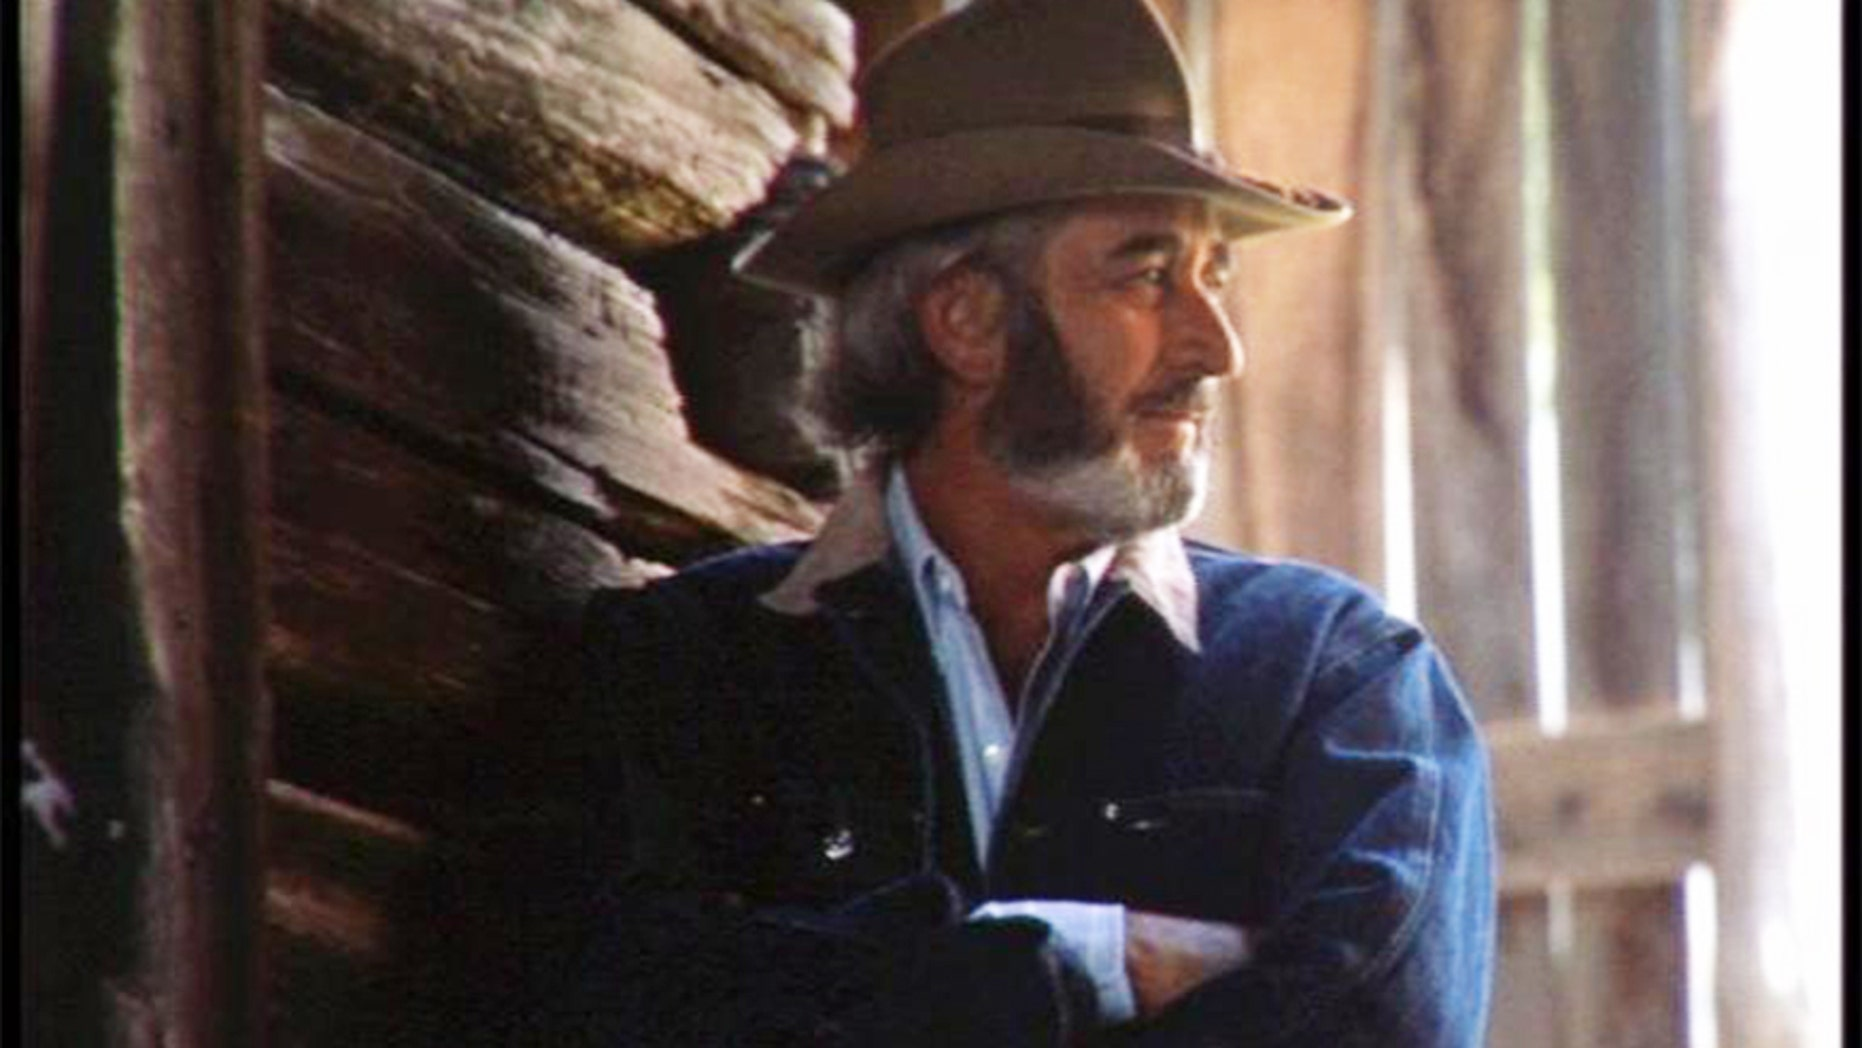 Don Williams, celebrated as one of the biggest country music stars in the 1970s and 1980s, has died. He was 78.